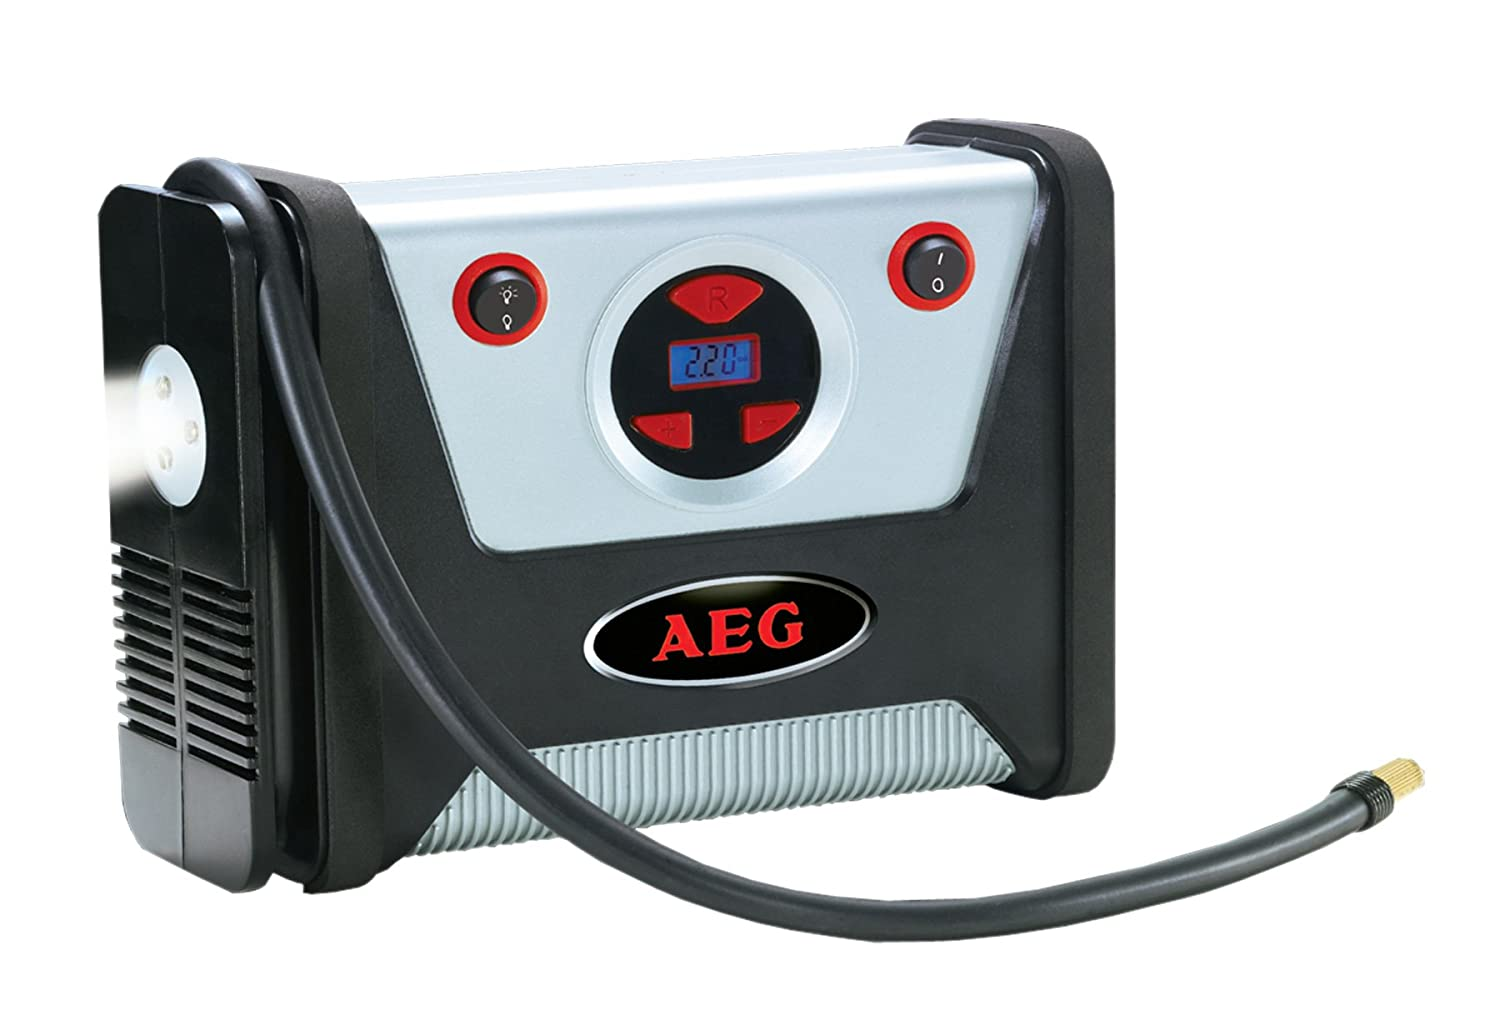 AEG Automotive 5122 Programmierbarer Kompressor